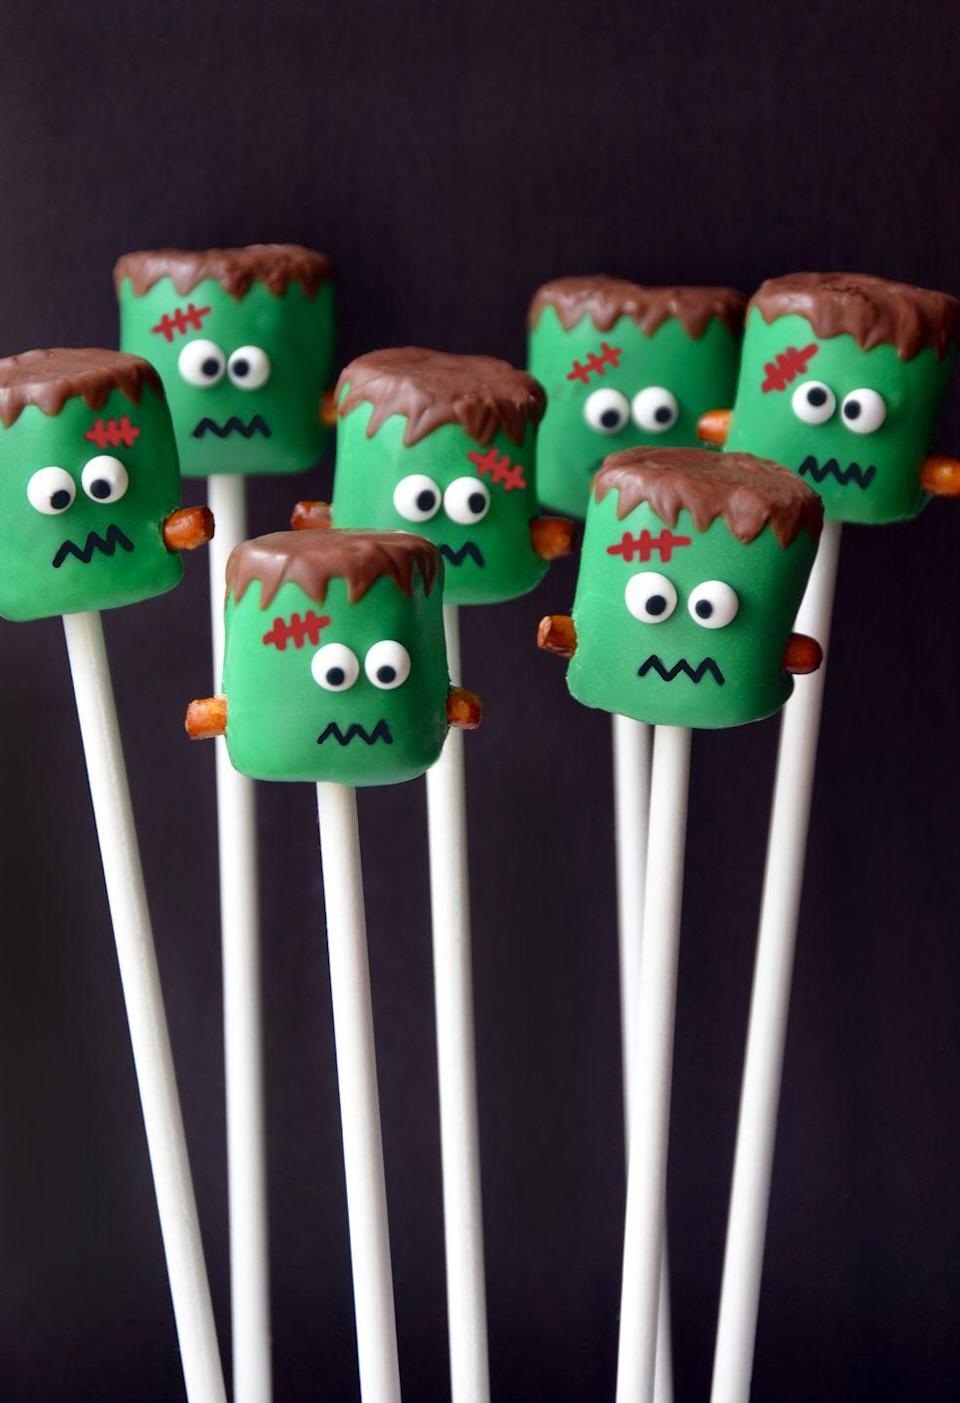 """<p>These little green guys will make anyone smile. Place them in a decorative container to dress up your dessert buffet. </p><p><a class=""""link rapid-noclick-resp"""" href=""""https://www.justataste.com/halloween-frankenstein-marshmallow-pops-recipe/"""" rel=""""nofollow noopener"""" target=""""_blank"""" data-ylk=""""slk:GET THE RECIPE"""">GET THE RECIPE</a></p>"""